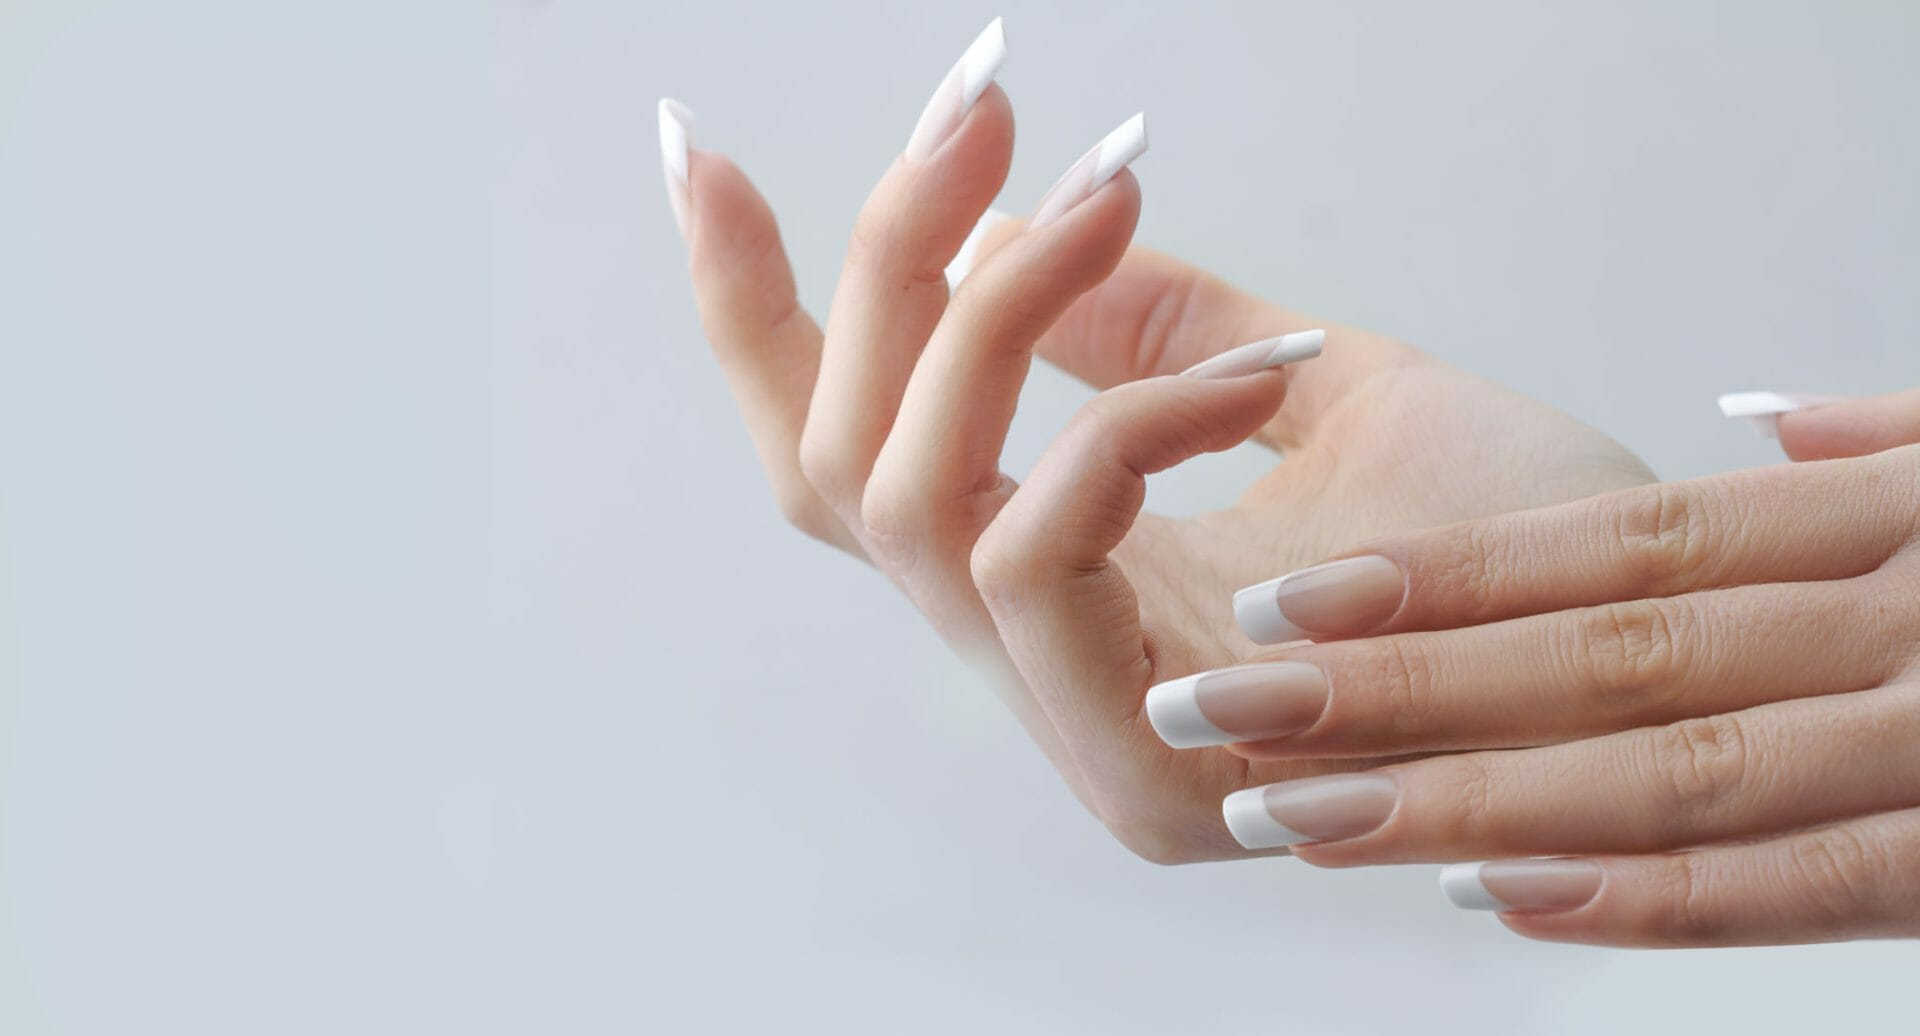 nails grow faster with acrylic